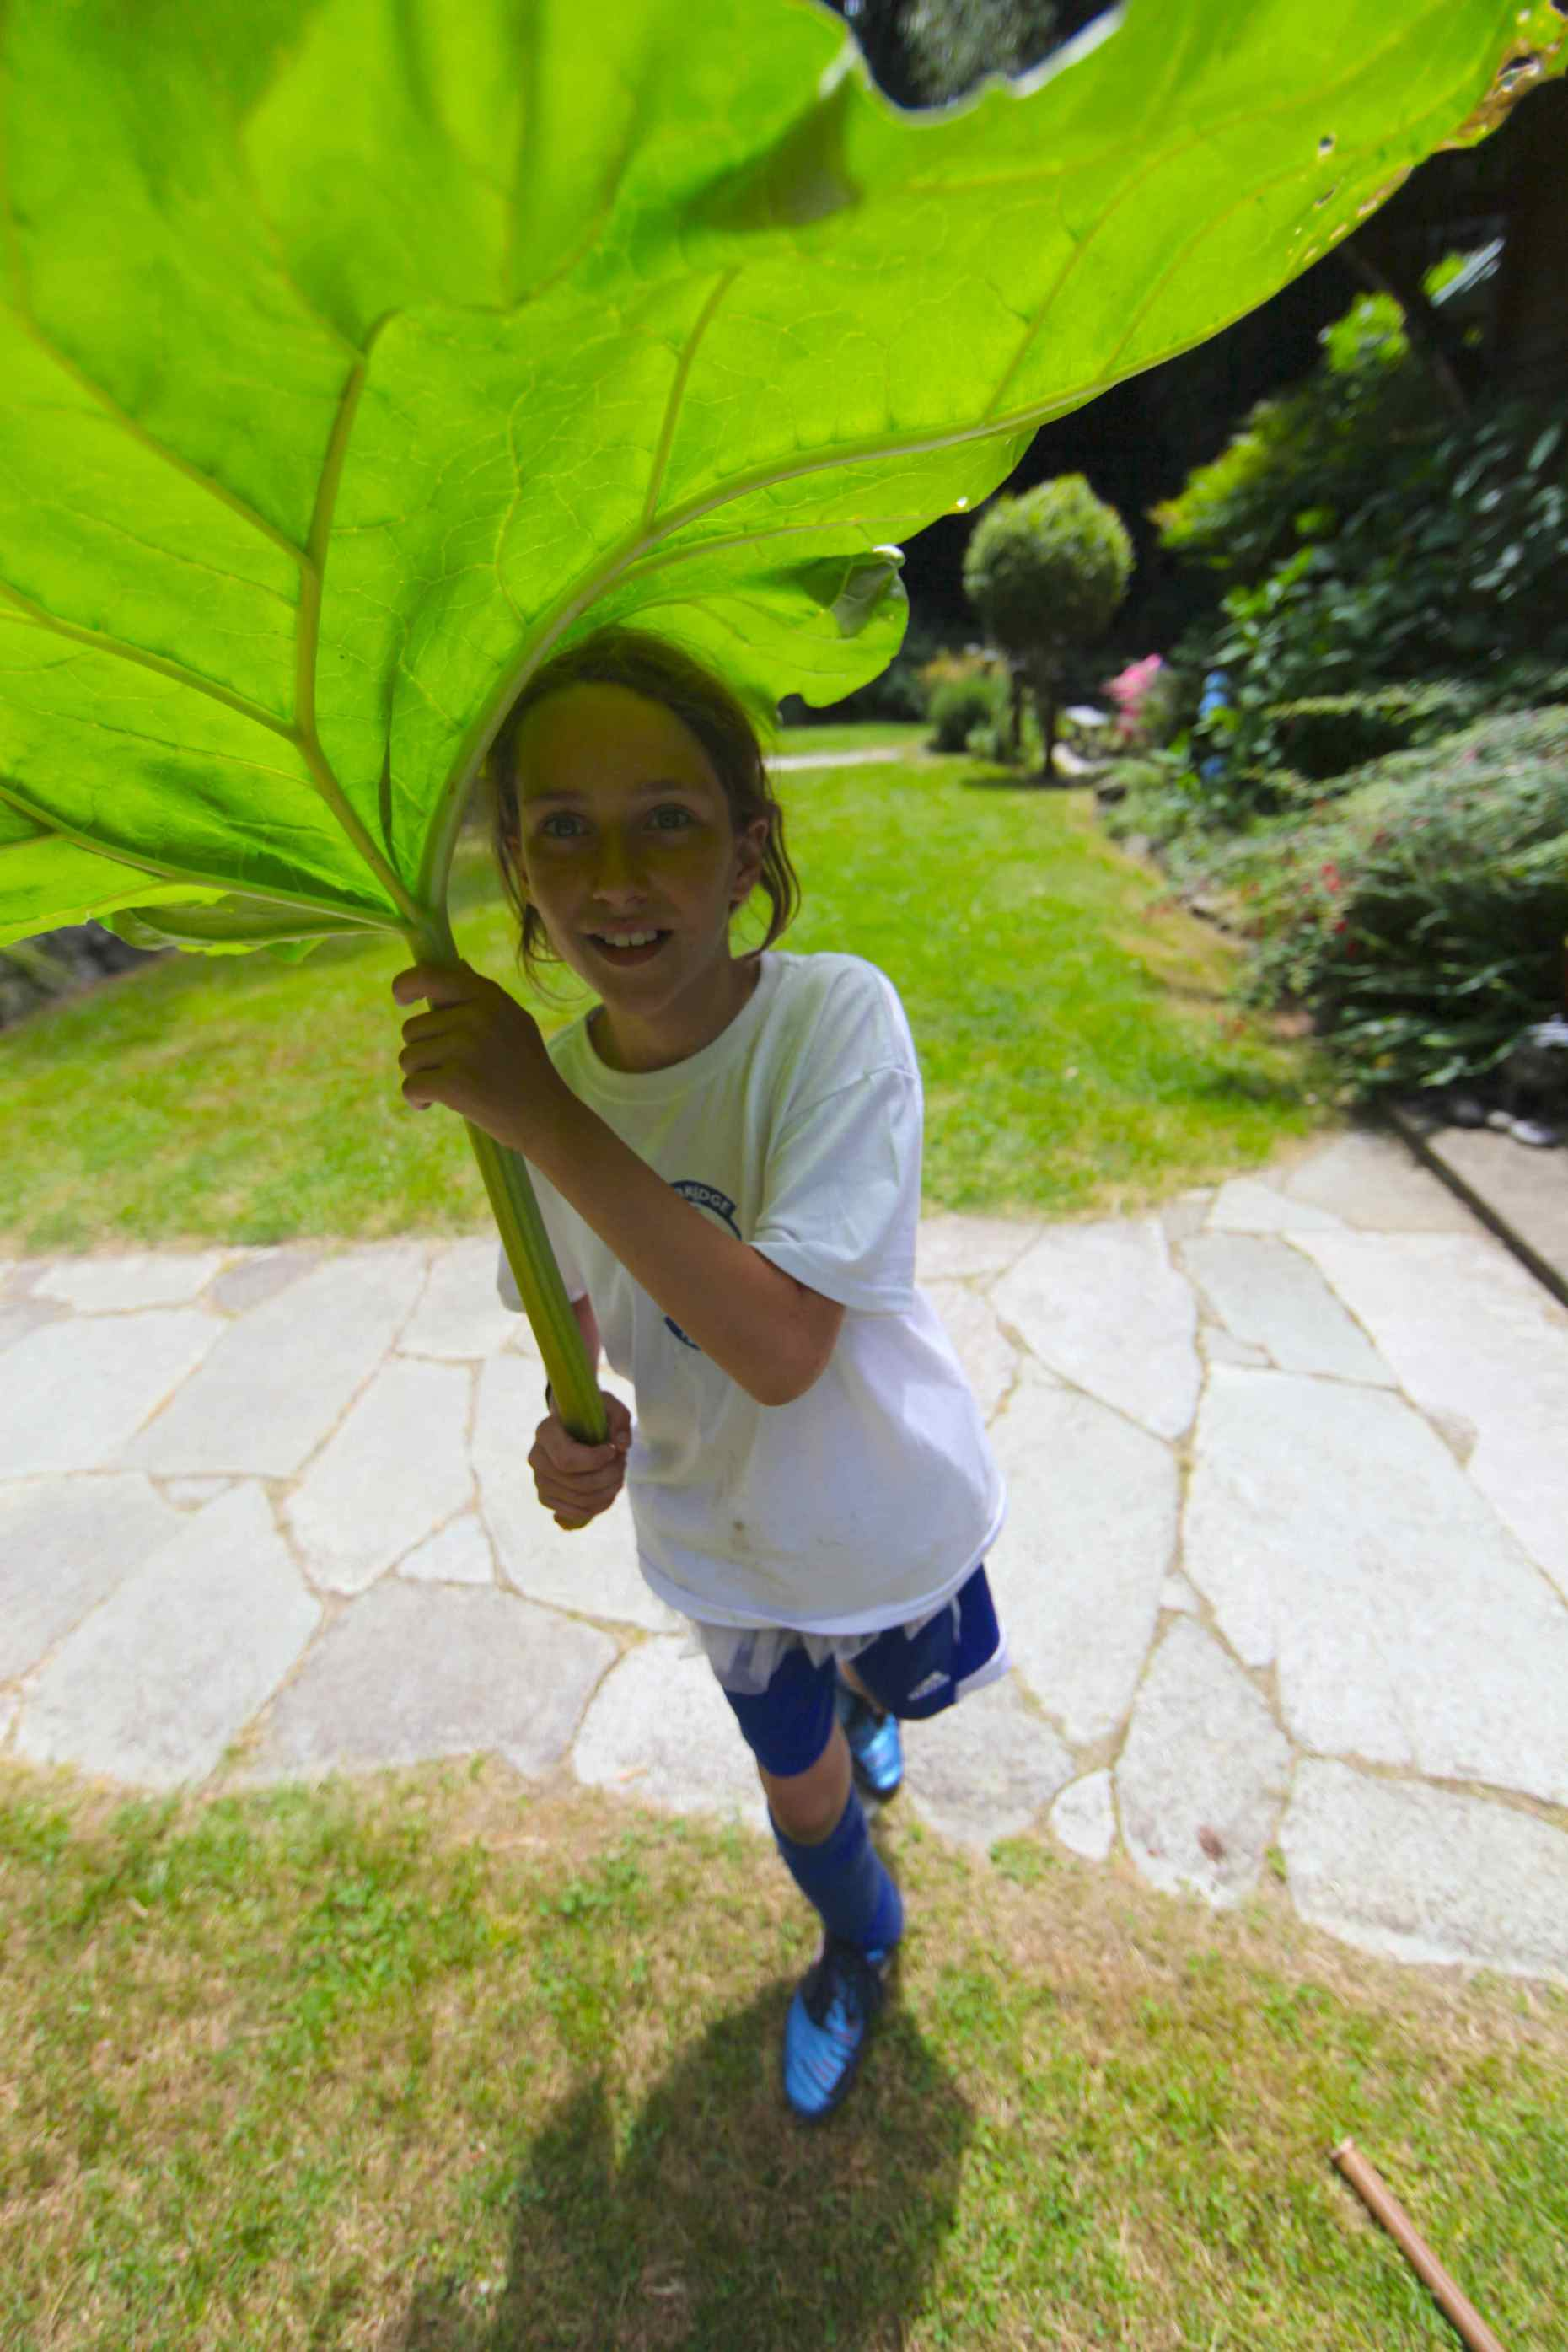 This year's rhubarb is, well, GIANT. © Liesl Clark